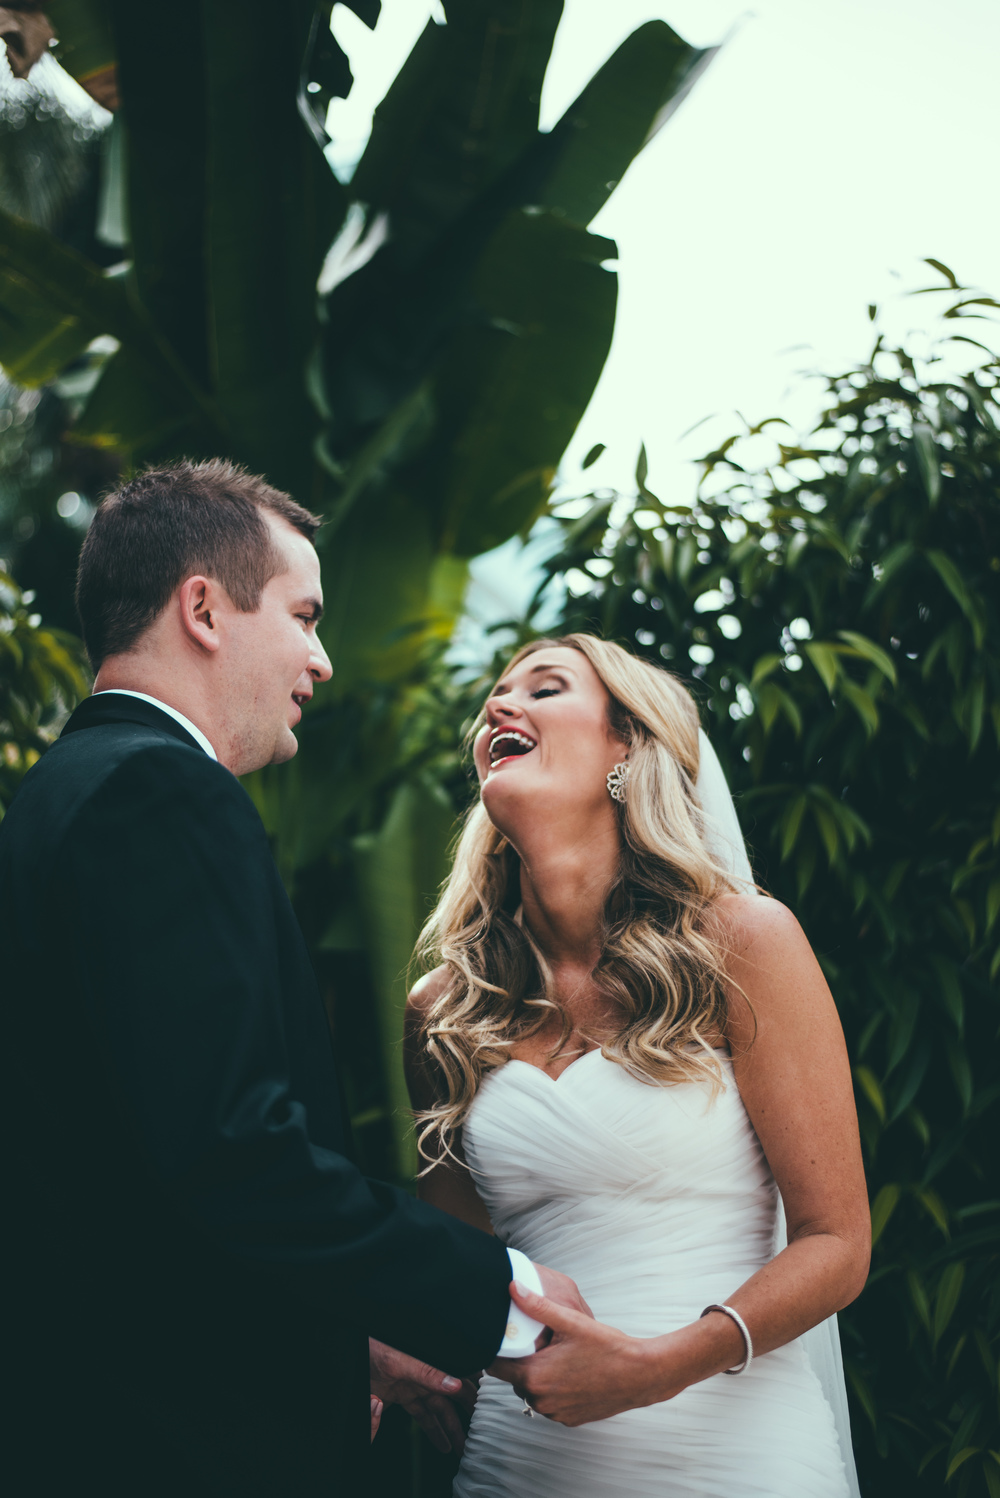 The Palms Hotel & Spa Wedding Miami Florida Photographer Bride Laughing at Grooms joke